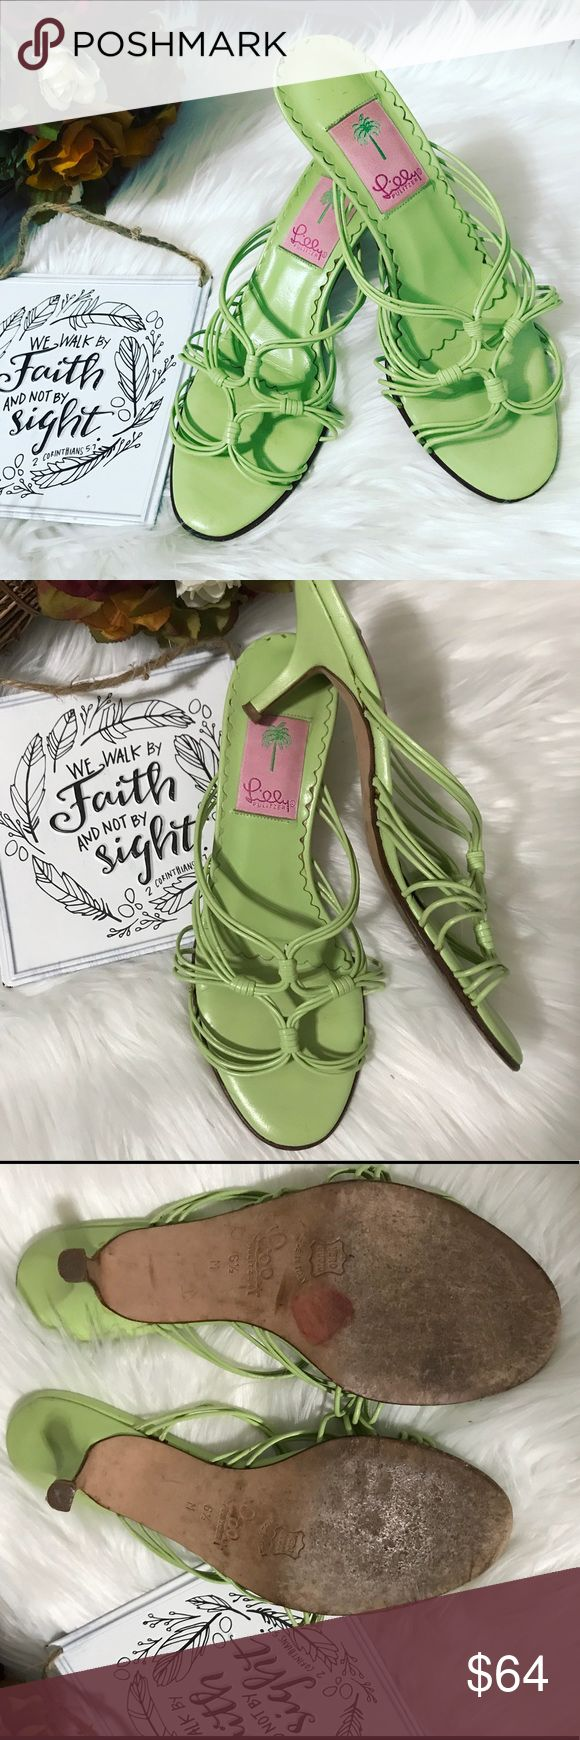 Lilly Pulitzer Green Strappy Kitty Heels Sz 6.5 M Lilly Pulitzer green Strappy kitty heels, made in Italy leather sole. Fun tropical color to pair with your unique and fun Lilly Pulitzer pieces or to simply add some style to your outfit. This shoes make me wish summer was here to pair them with some white jeans and a airy sheer off the shoulder top, straw handbag and some dainty jewelry. Over all they are in great condition, some small markings on the heels and some adhesive residue on the…